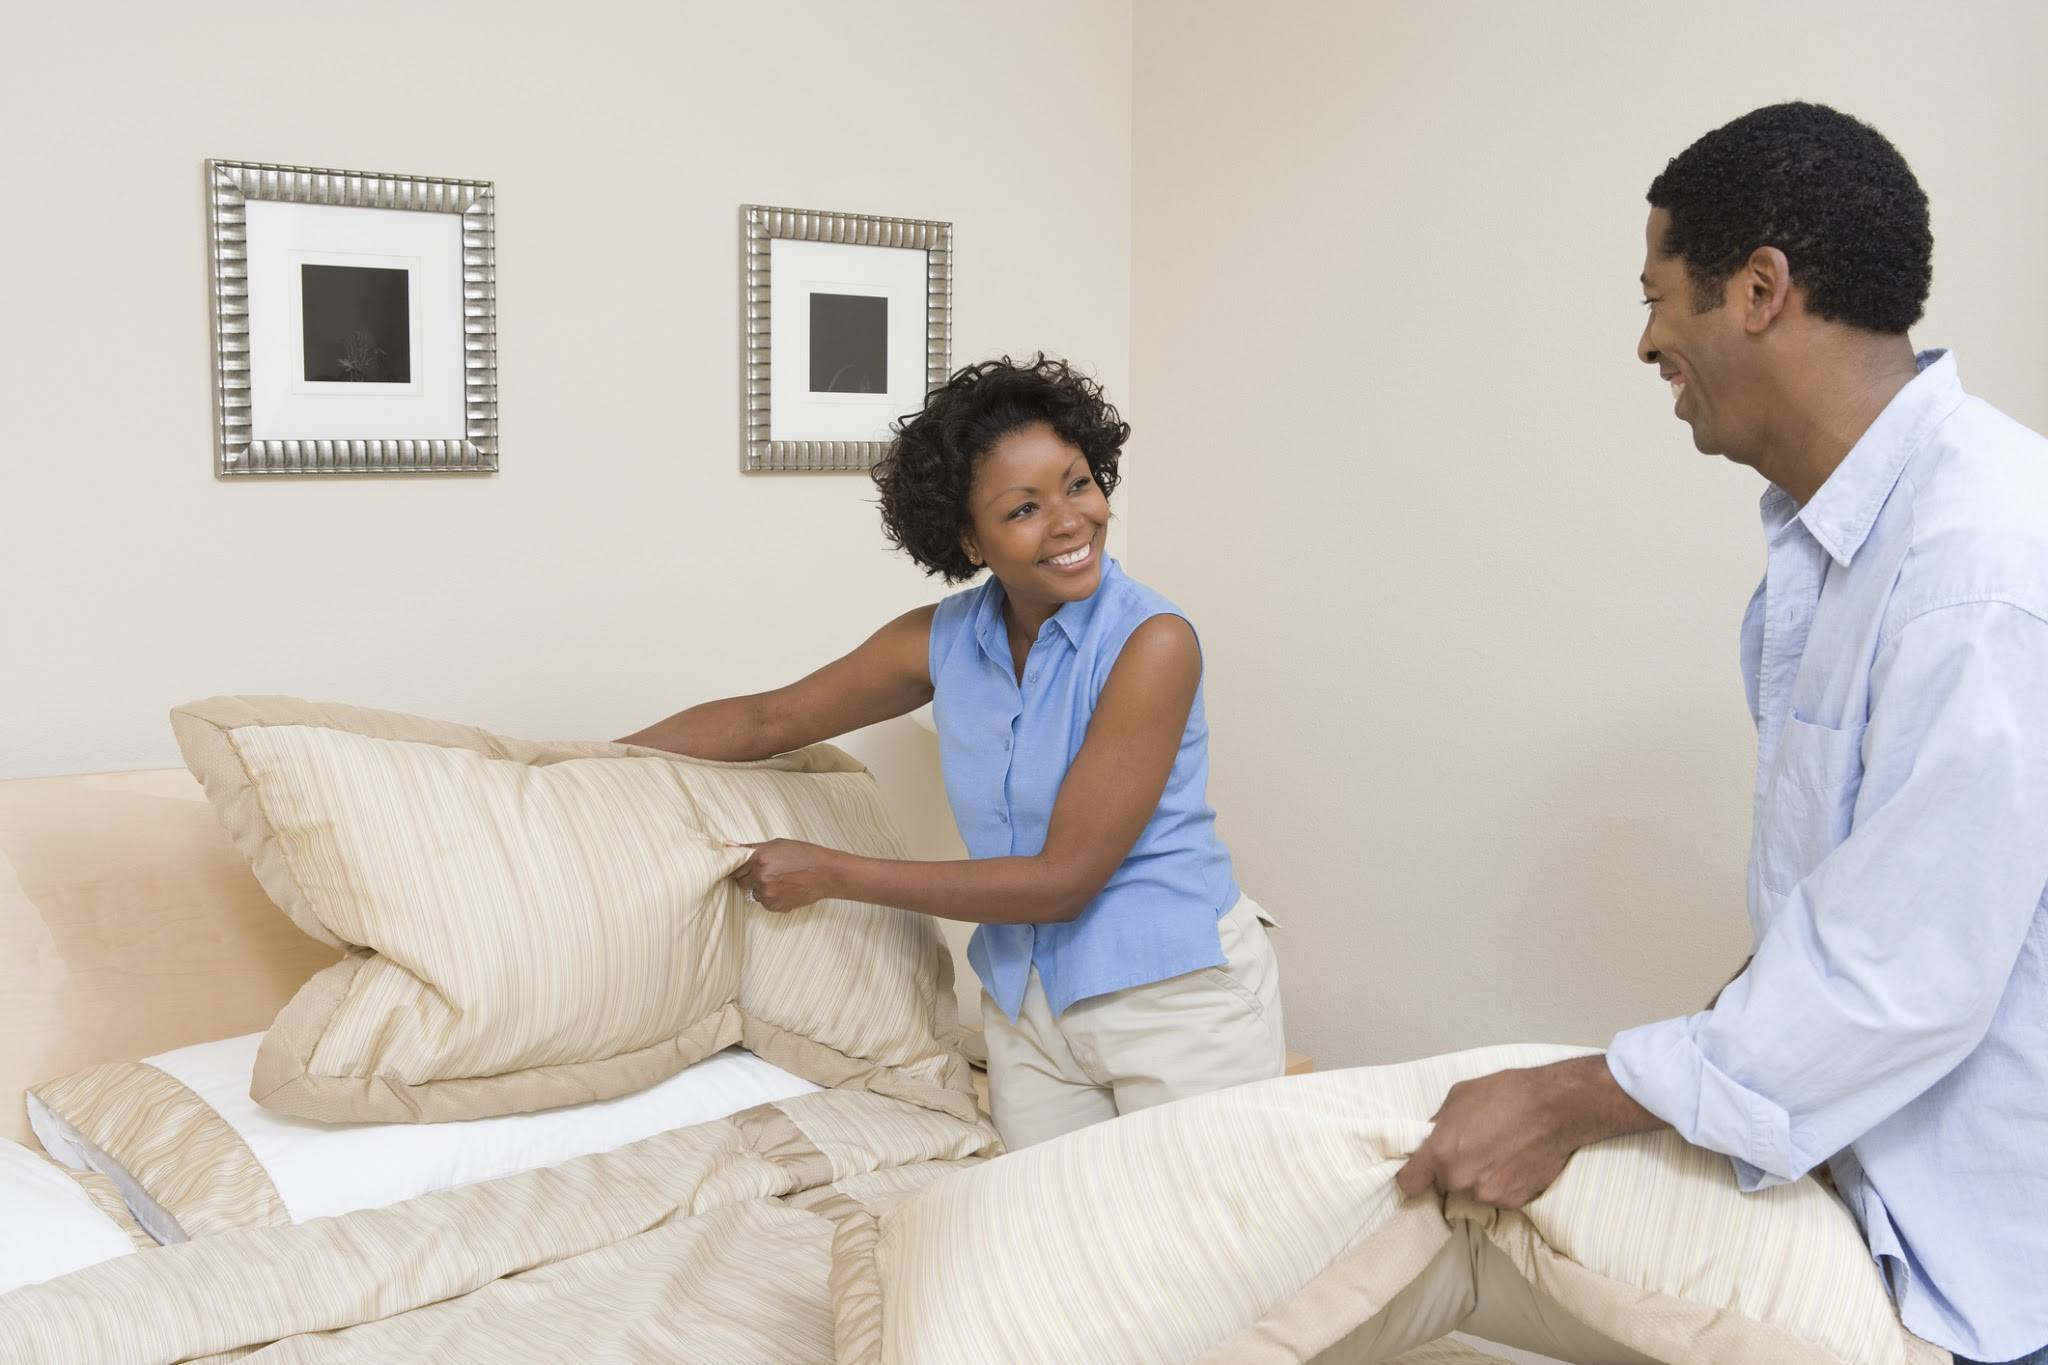 A Must Read - 9 Suggestions On Building Your Marriage